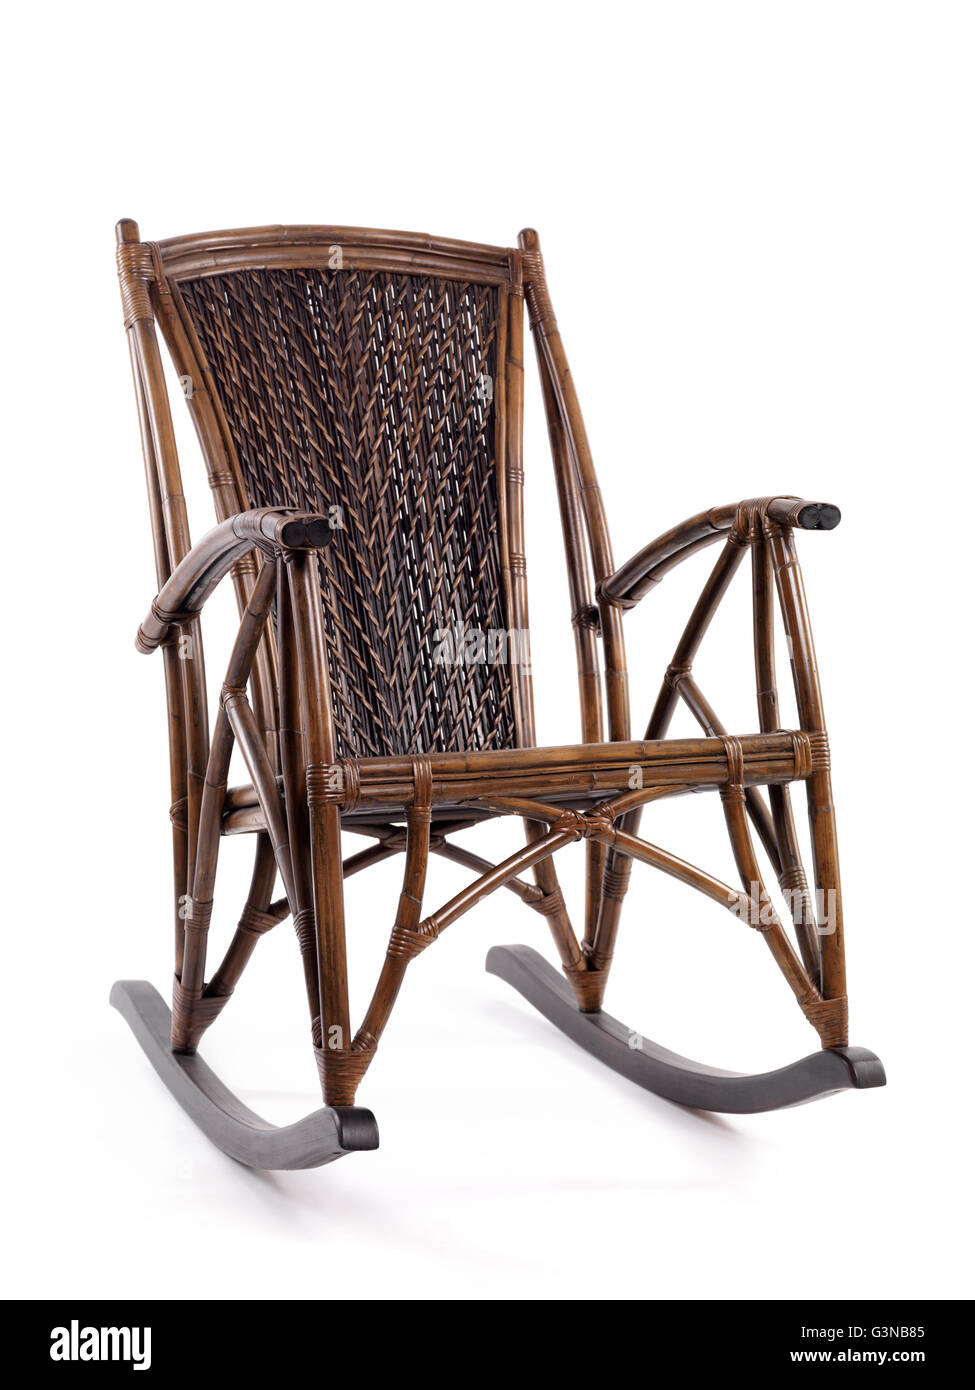 Antique Bamboo Wicker Rocking Chair Stock Photo 105576021 Alamy